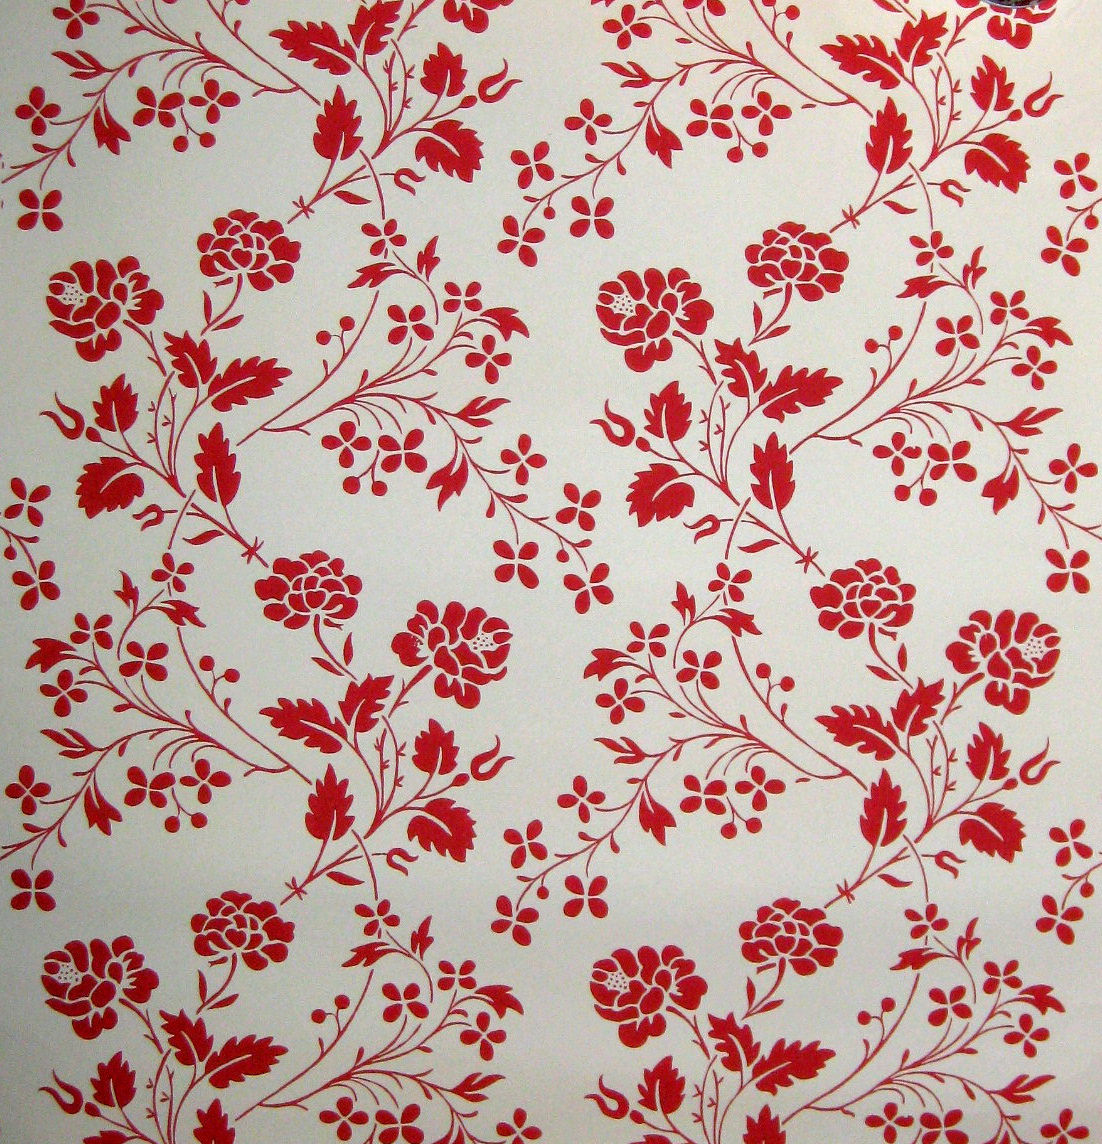 Wall Paper Patterns 15+ red floral wallpapers | floral patterns | freecreatives